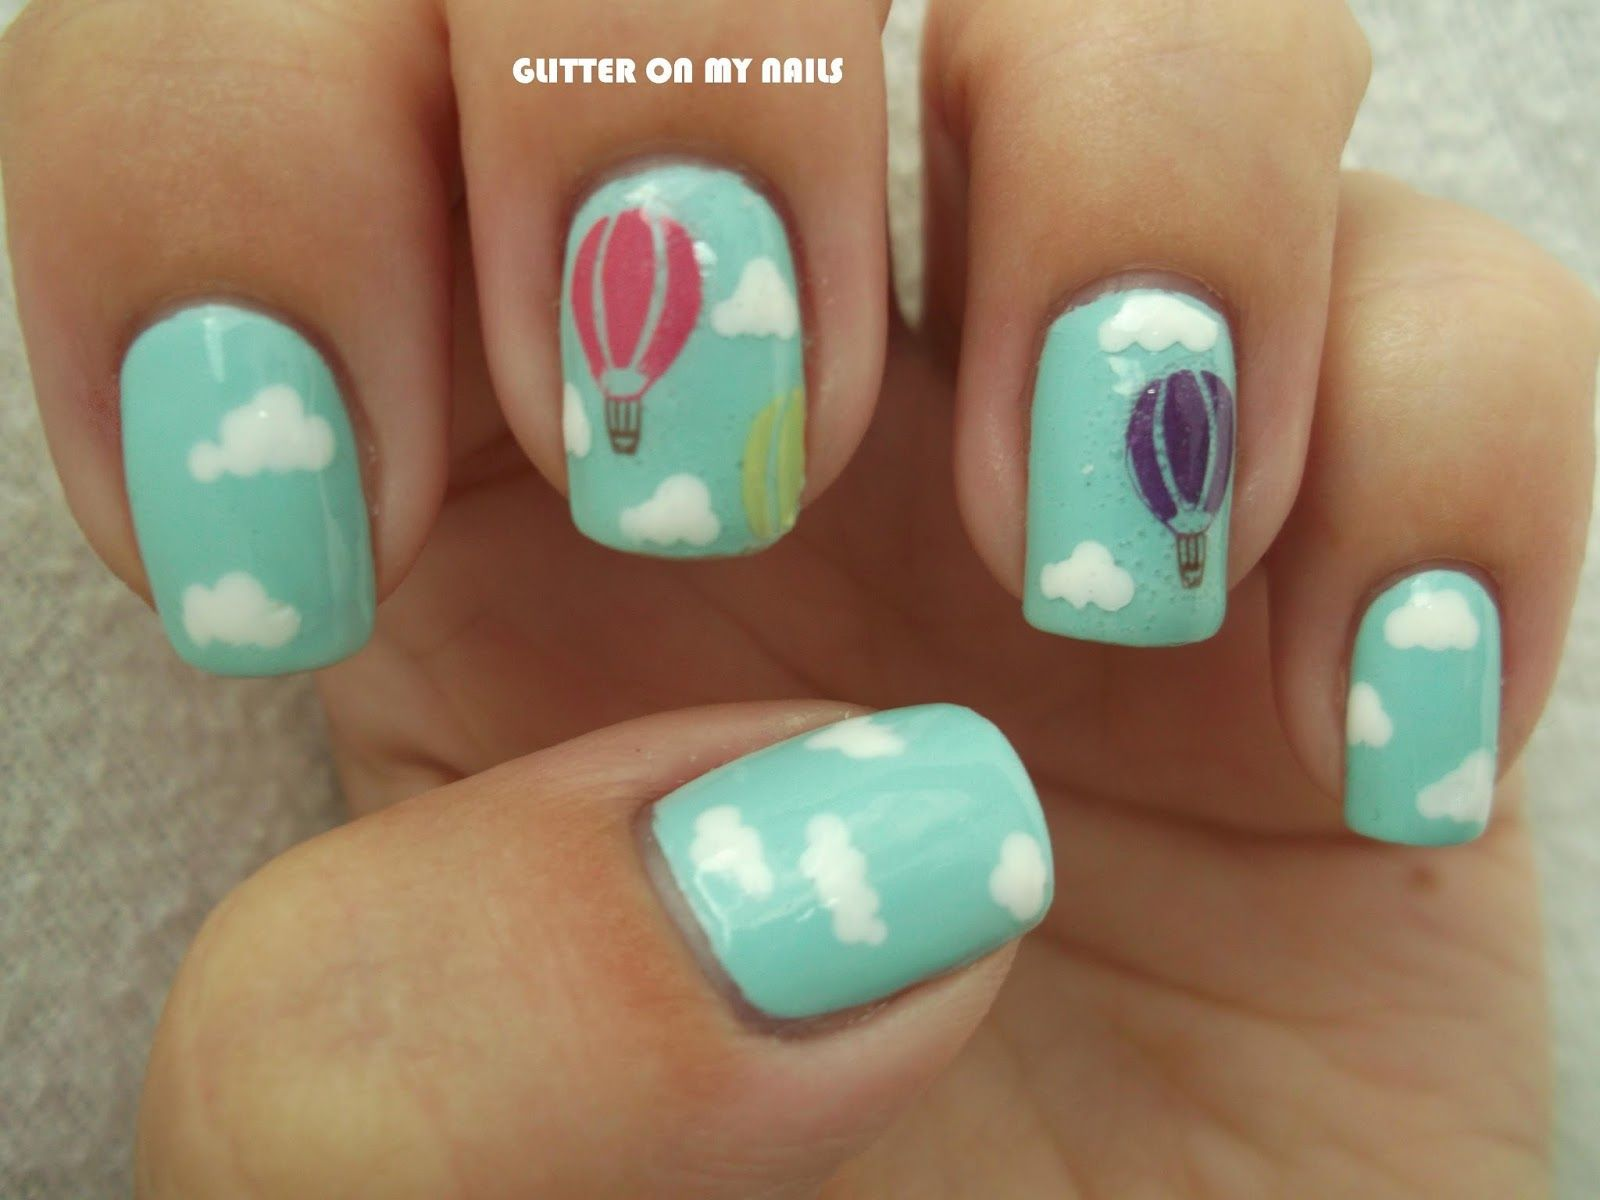 Glitter on my nails hot air balloons nail art nail art all glitter on my nails hot air balloons nail art prinsesfo Choice Image